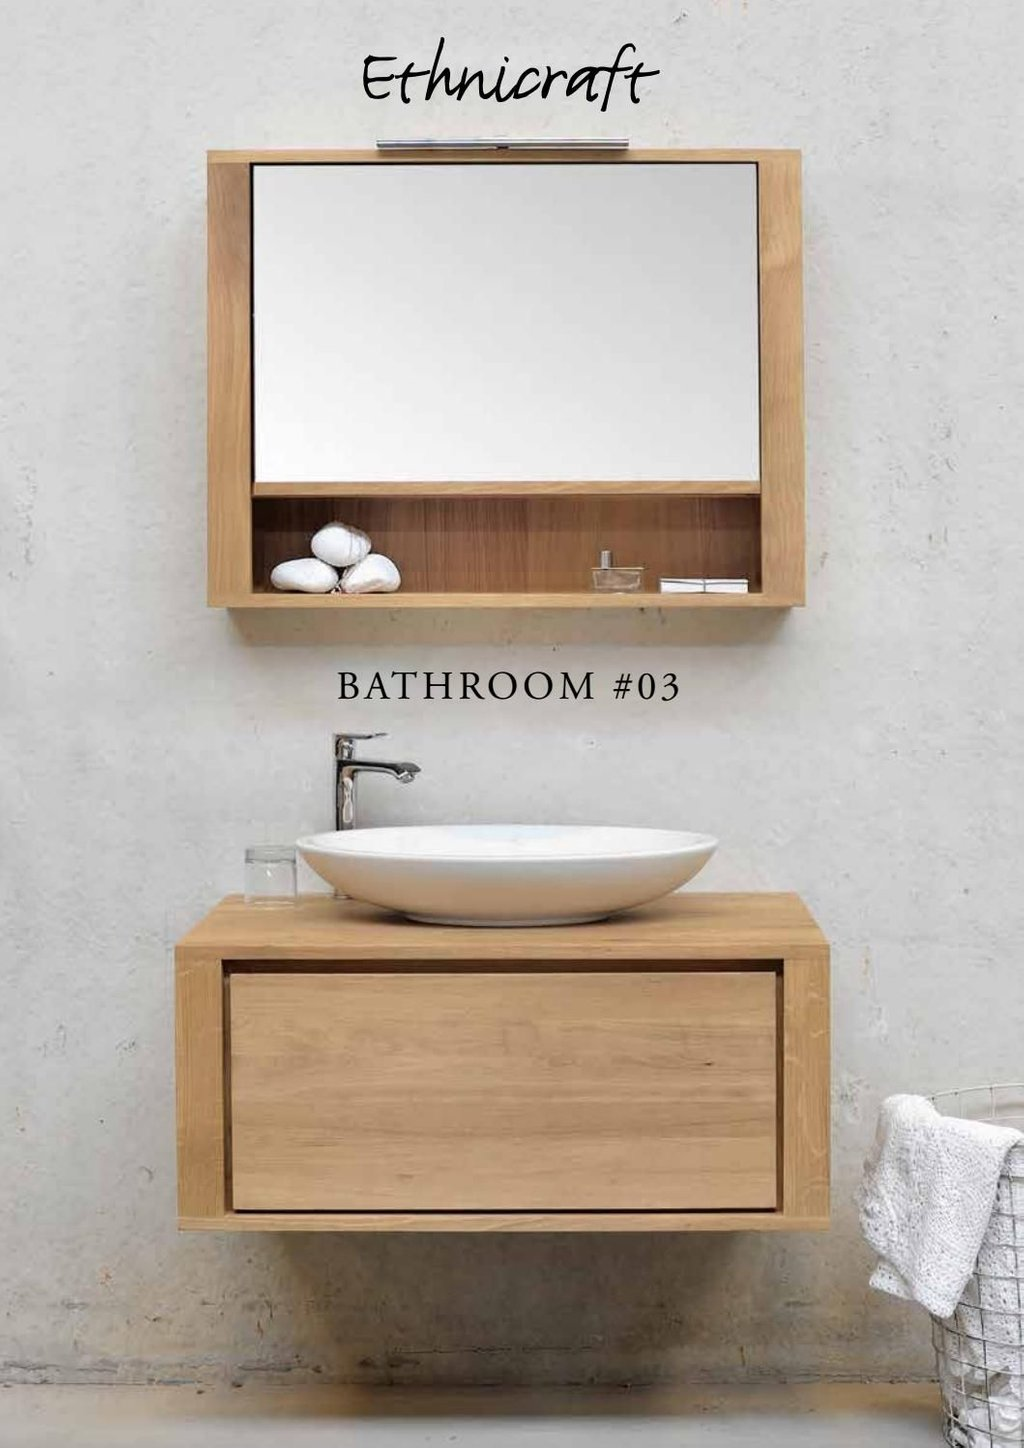 Ethnicraft Bathroom Catalogue 2016 En Bathroom Solid Wood Vanity Units For Bathrooms